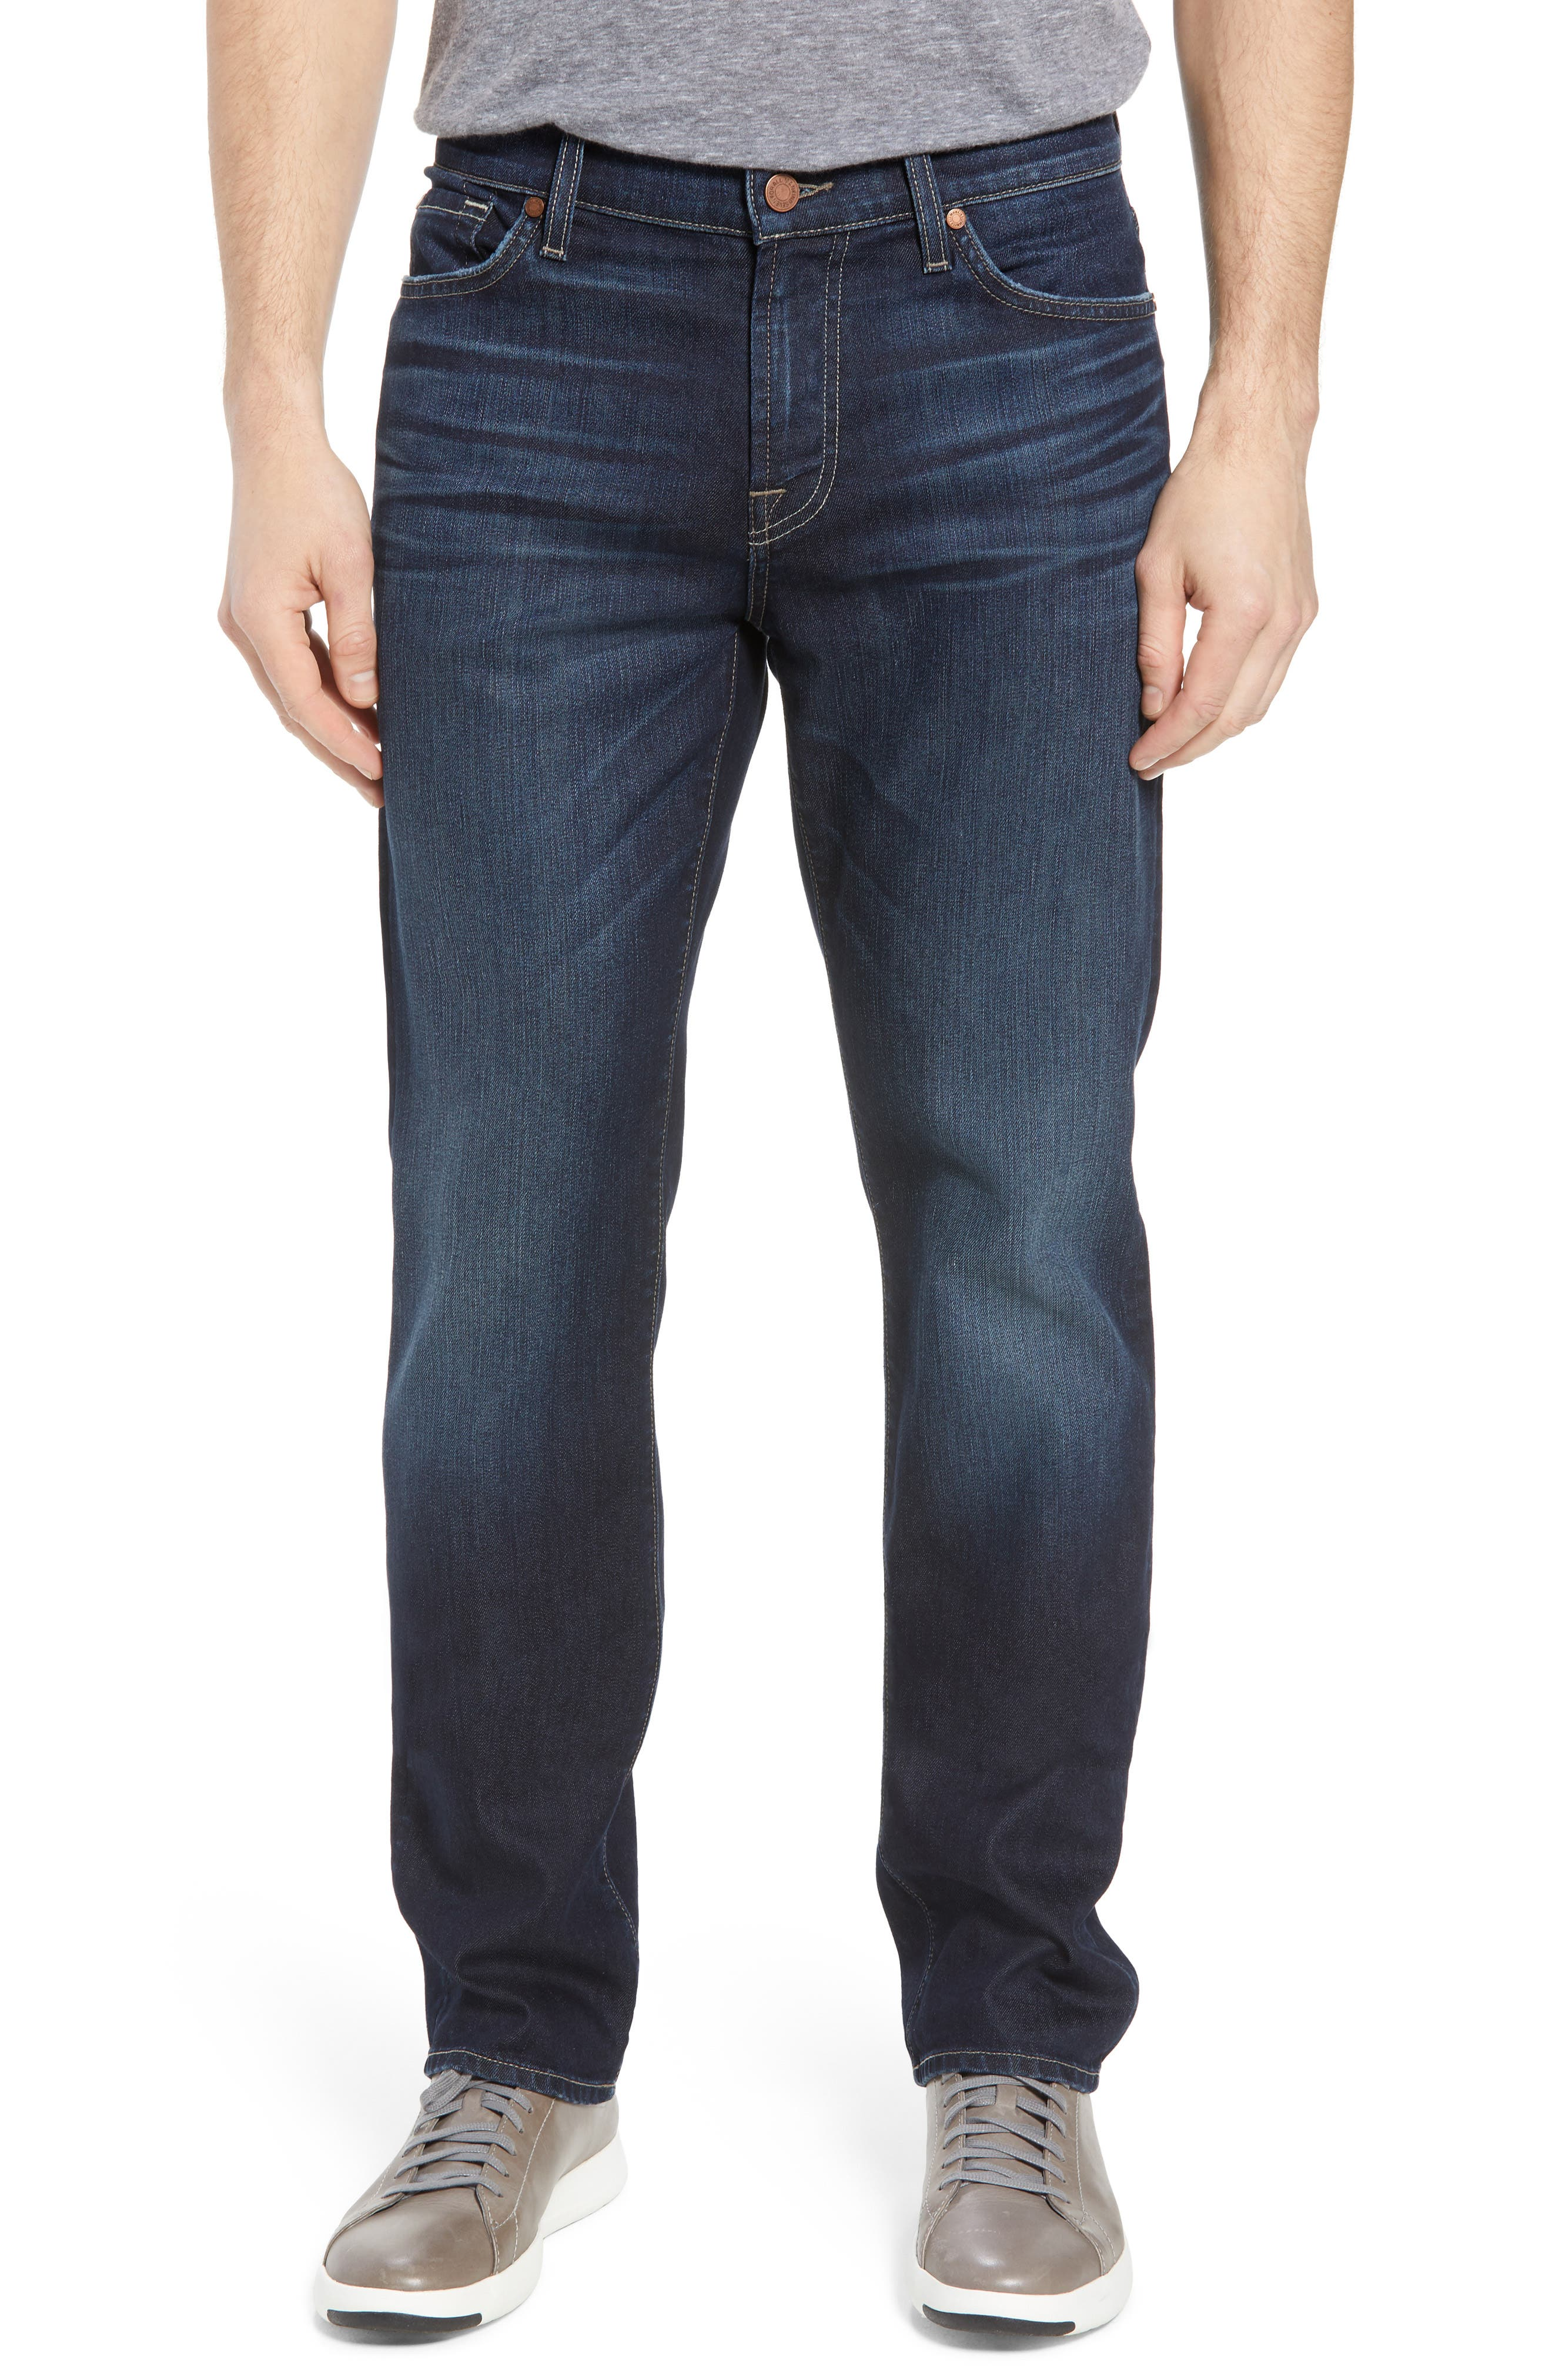 Airweft Standard Straight Leg Jeans,                         Main,                         color, 405